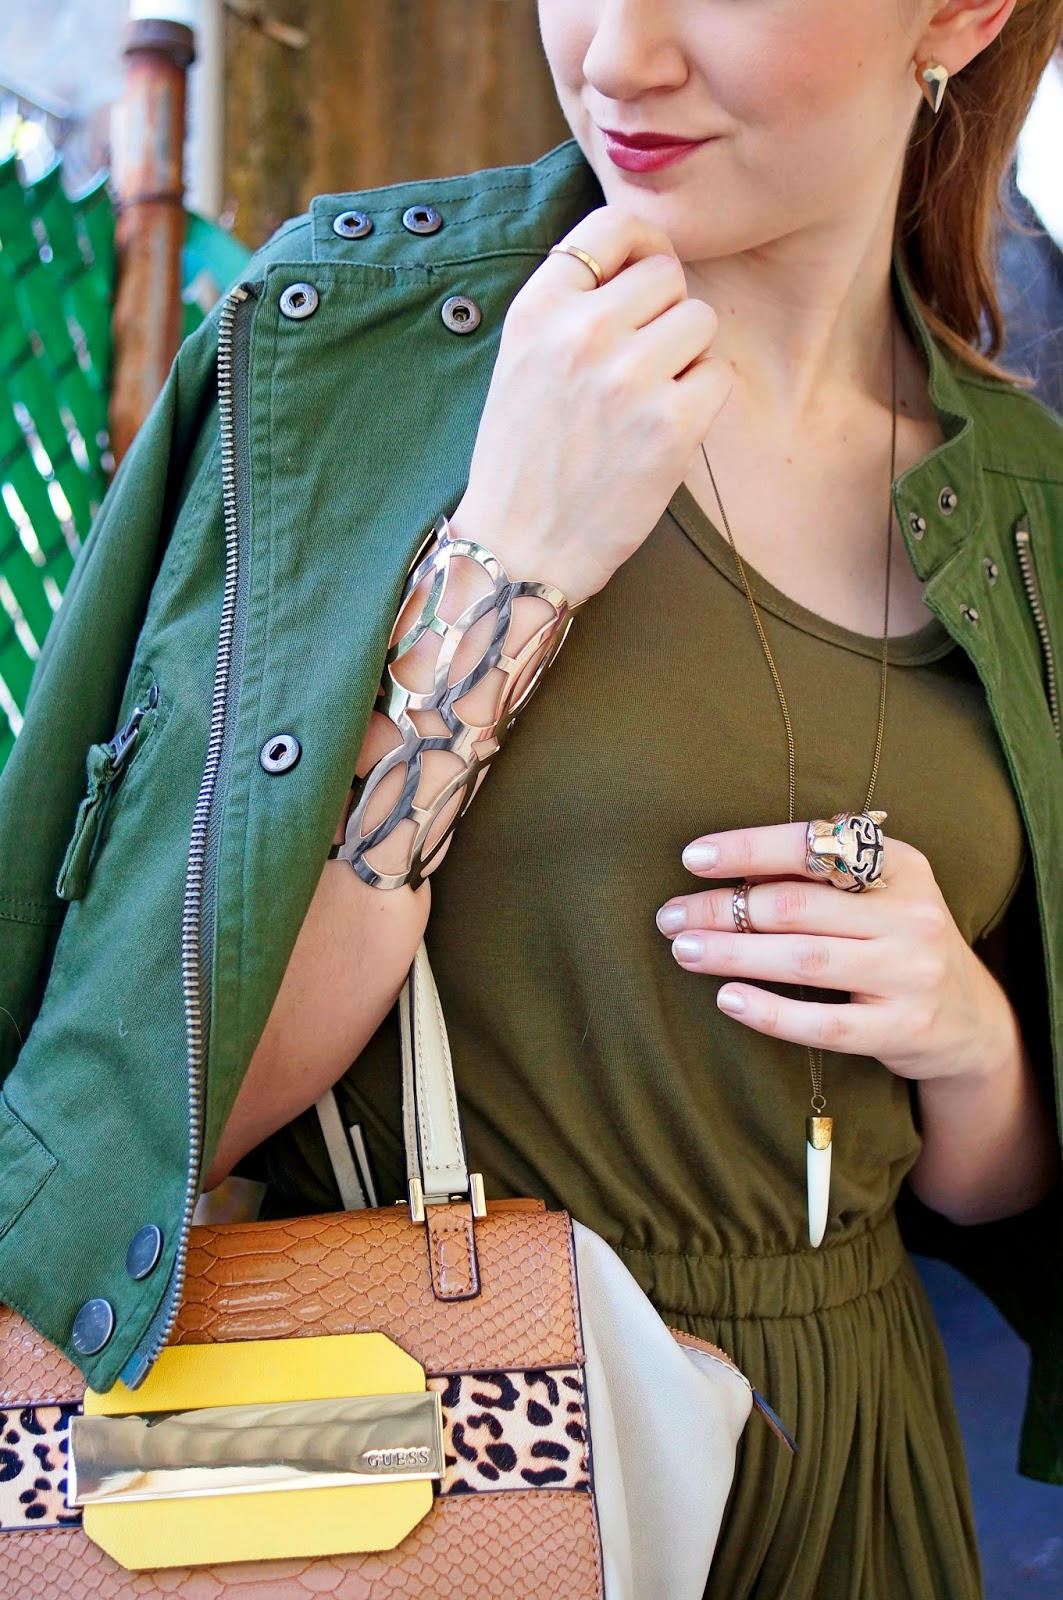 Leopard and Olive Green look fantastic together!